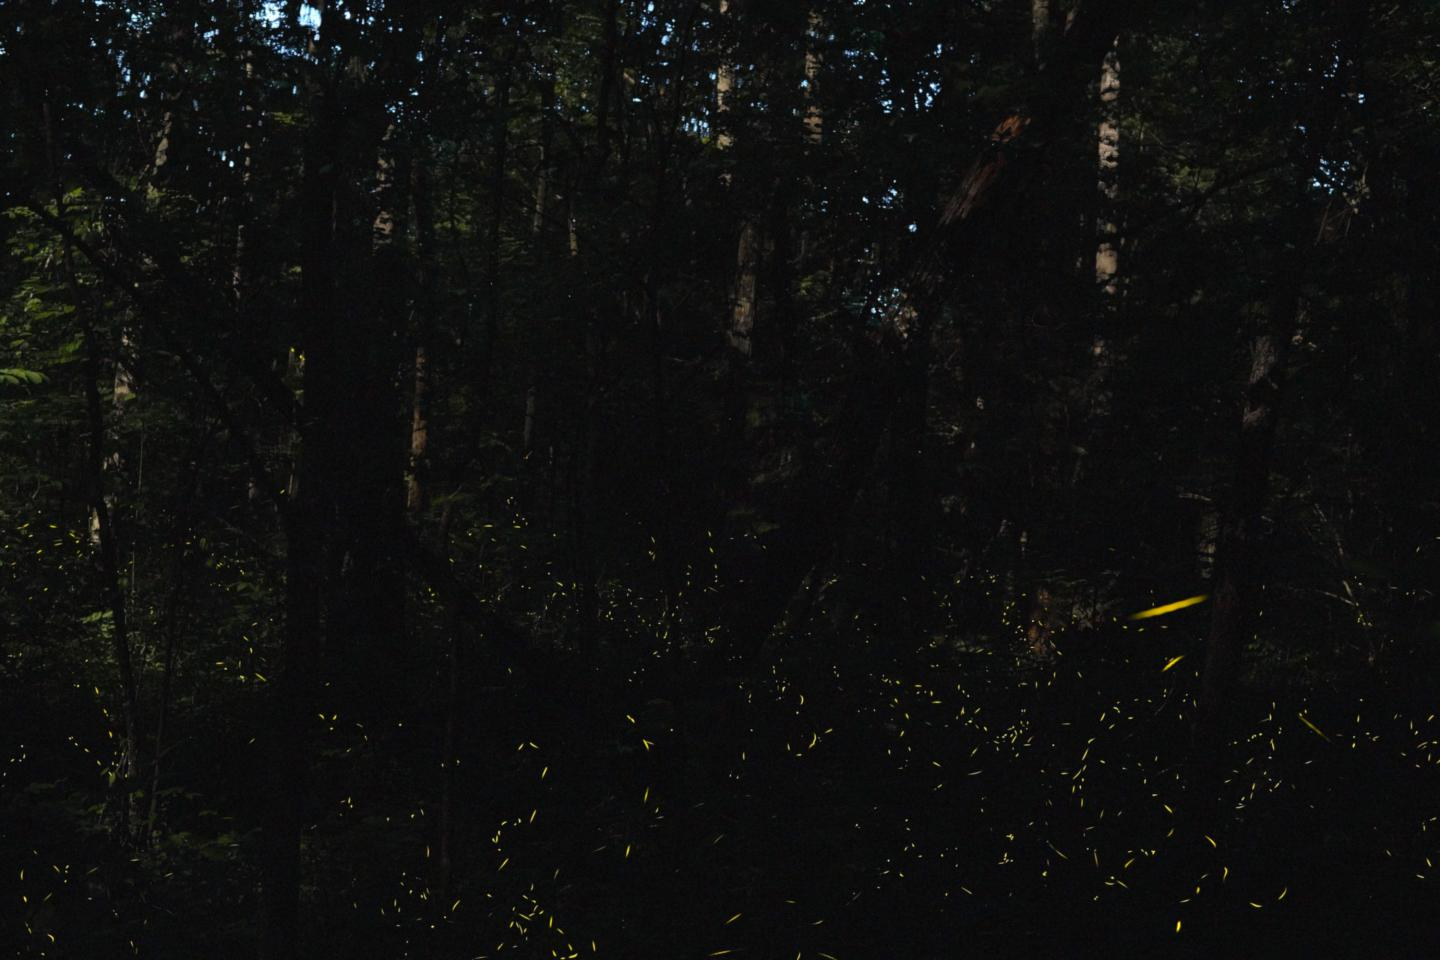 Synchronous Fireflies 1